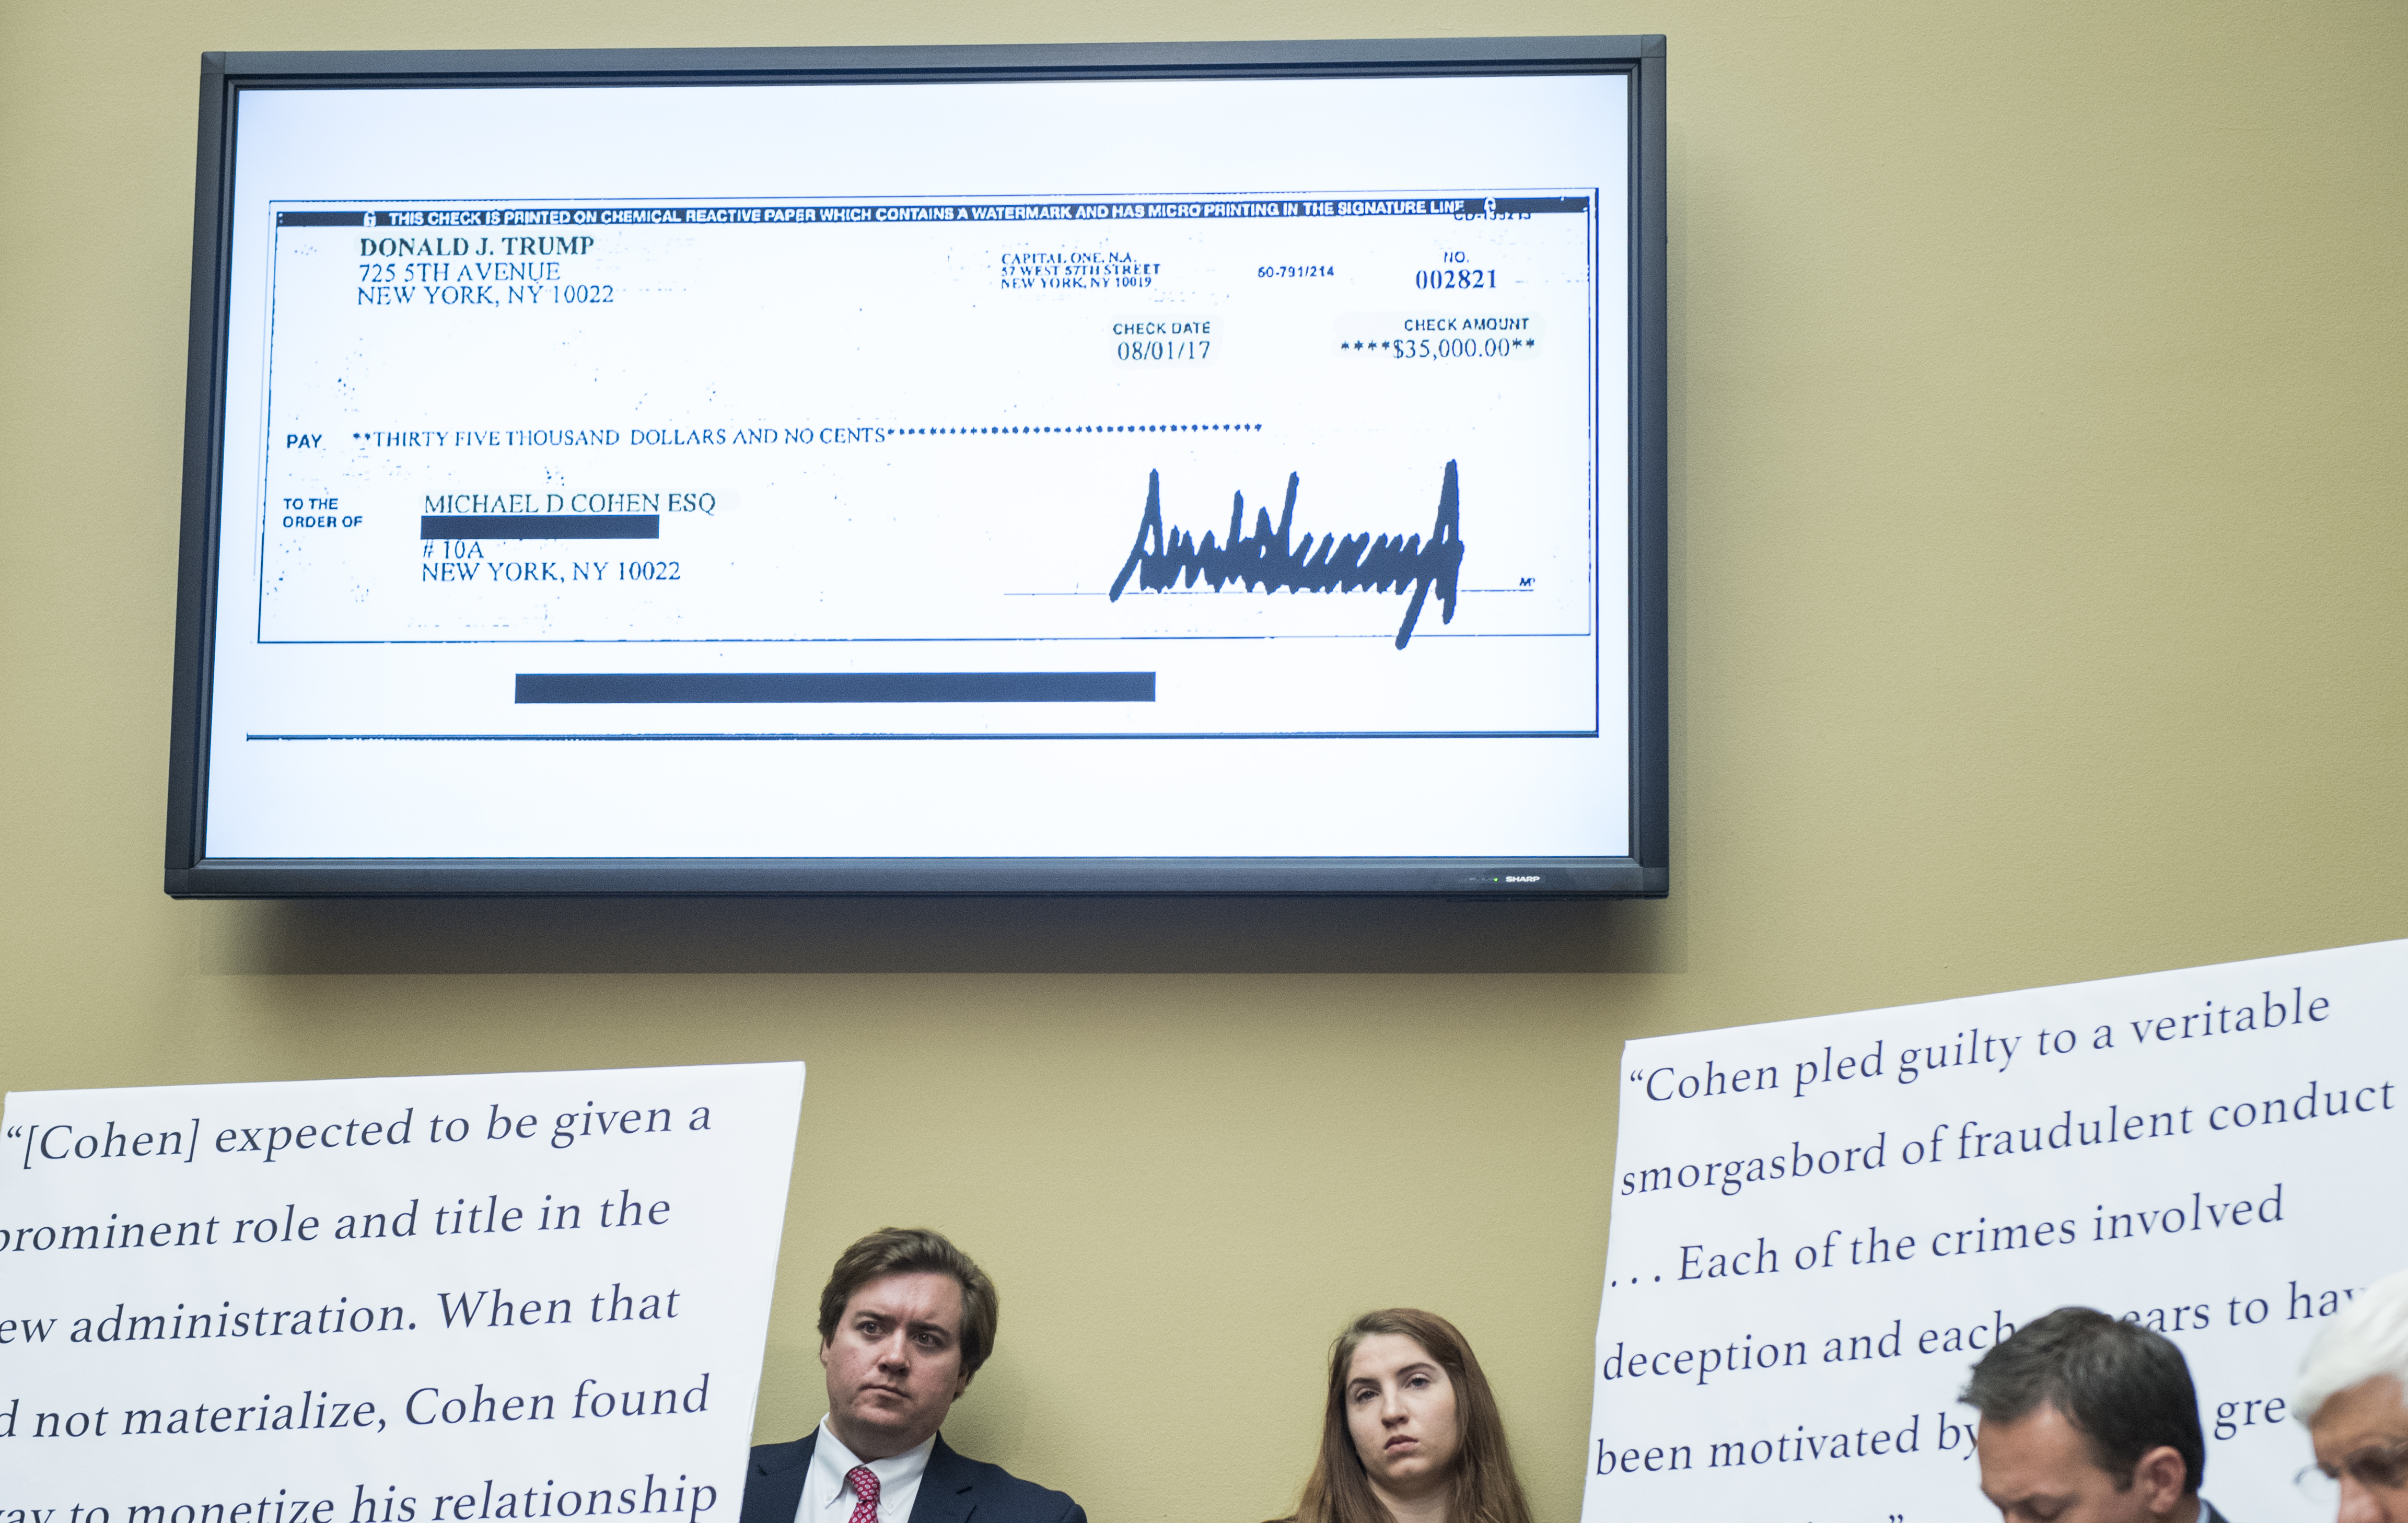 UNITED STATES - FEBRUARY 27: A check payable from President Donald Trump to Michael Cohen, former attorney for President Donald Trump, is displayed in the hearing room as Cohen testifyies during the House Oversight and Reform Committee hearing on Russian interference in the 2016 election on Wednesday, Feb. 27, 2019. (Photo By Bill Clark/CQ Roll Call)